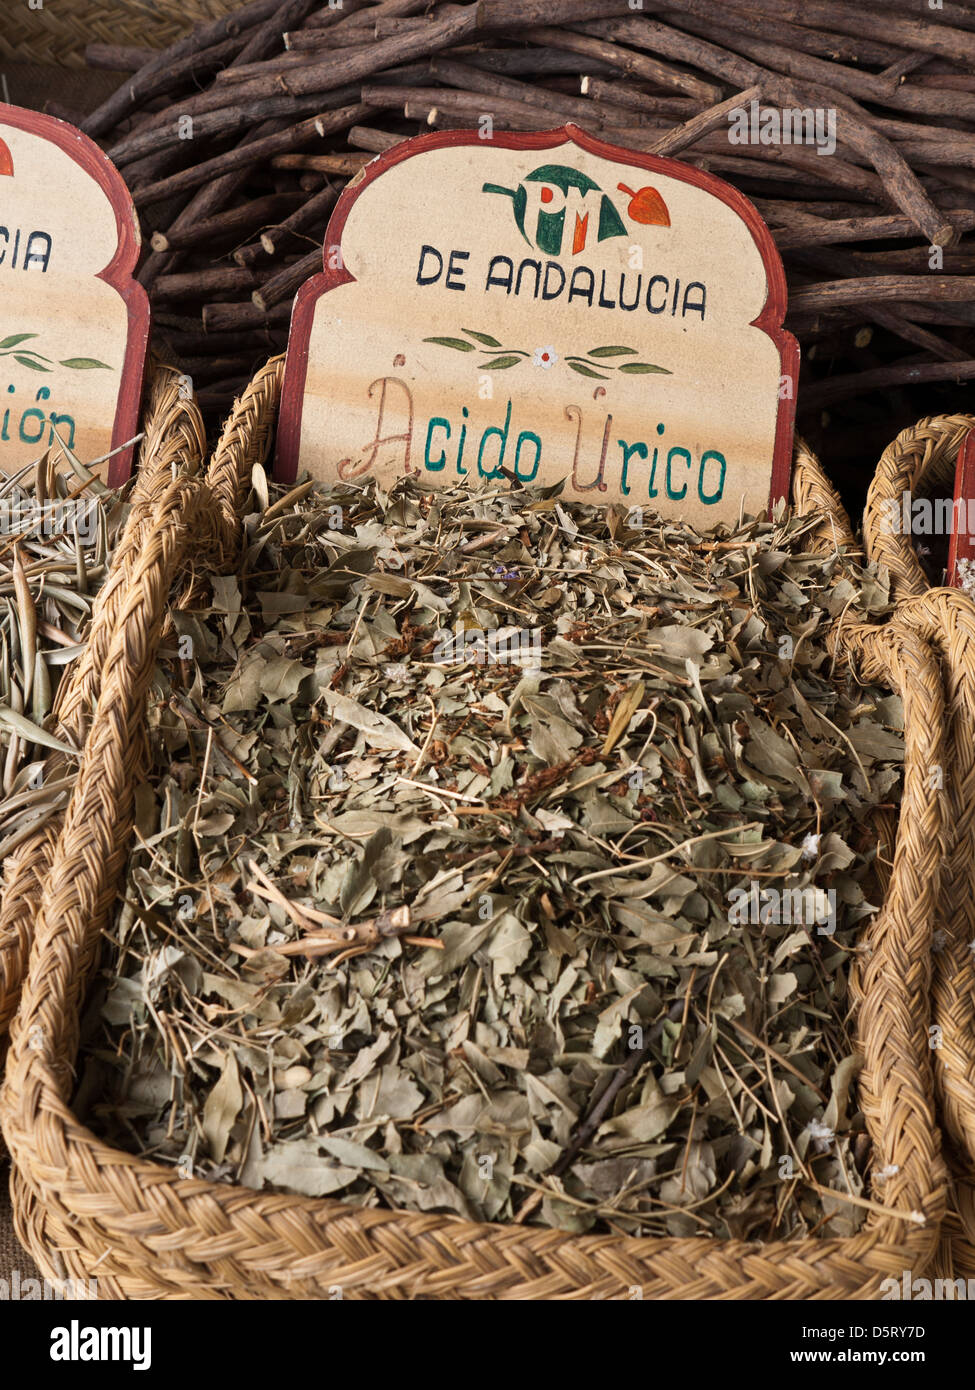 herbal remedy on display for sale Palma de Mallorca market stall  Spain - Stock Image